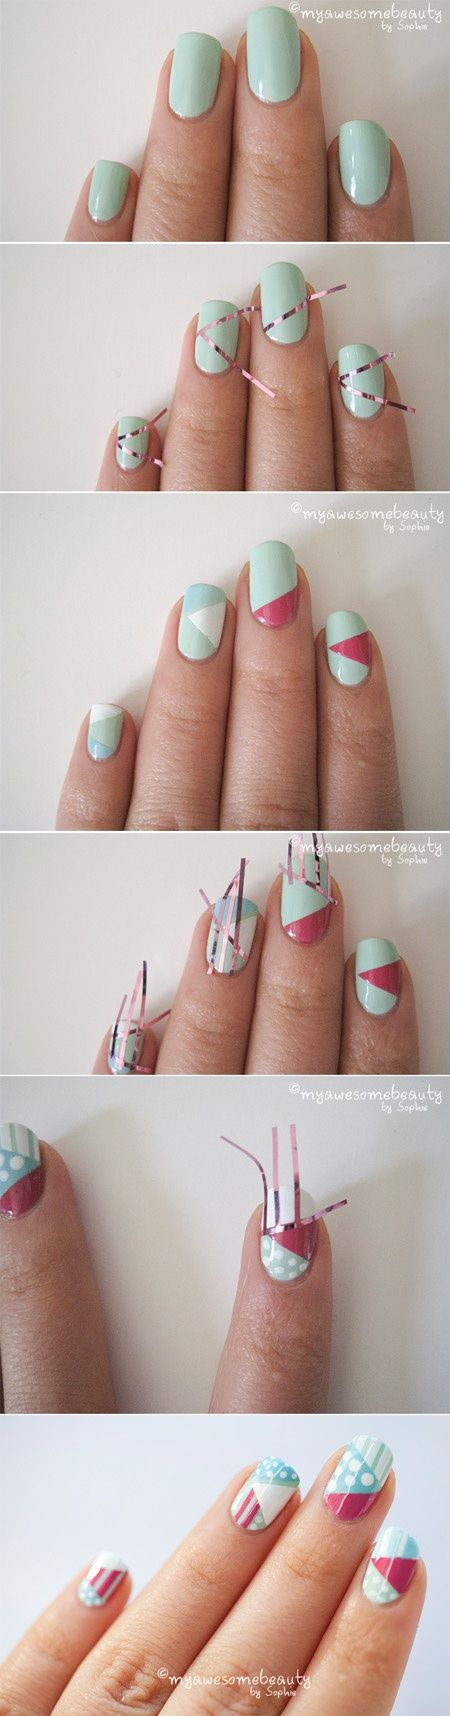 Lines and Polka Dot Nail Arts (6)